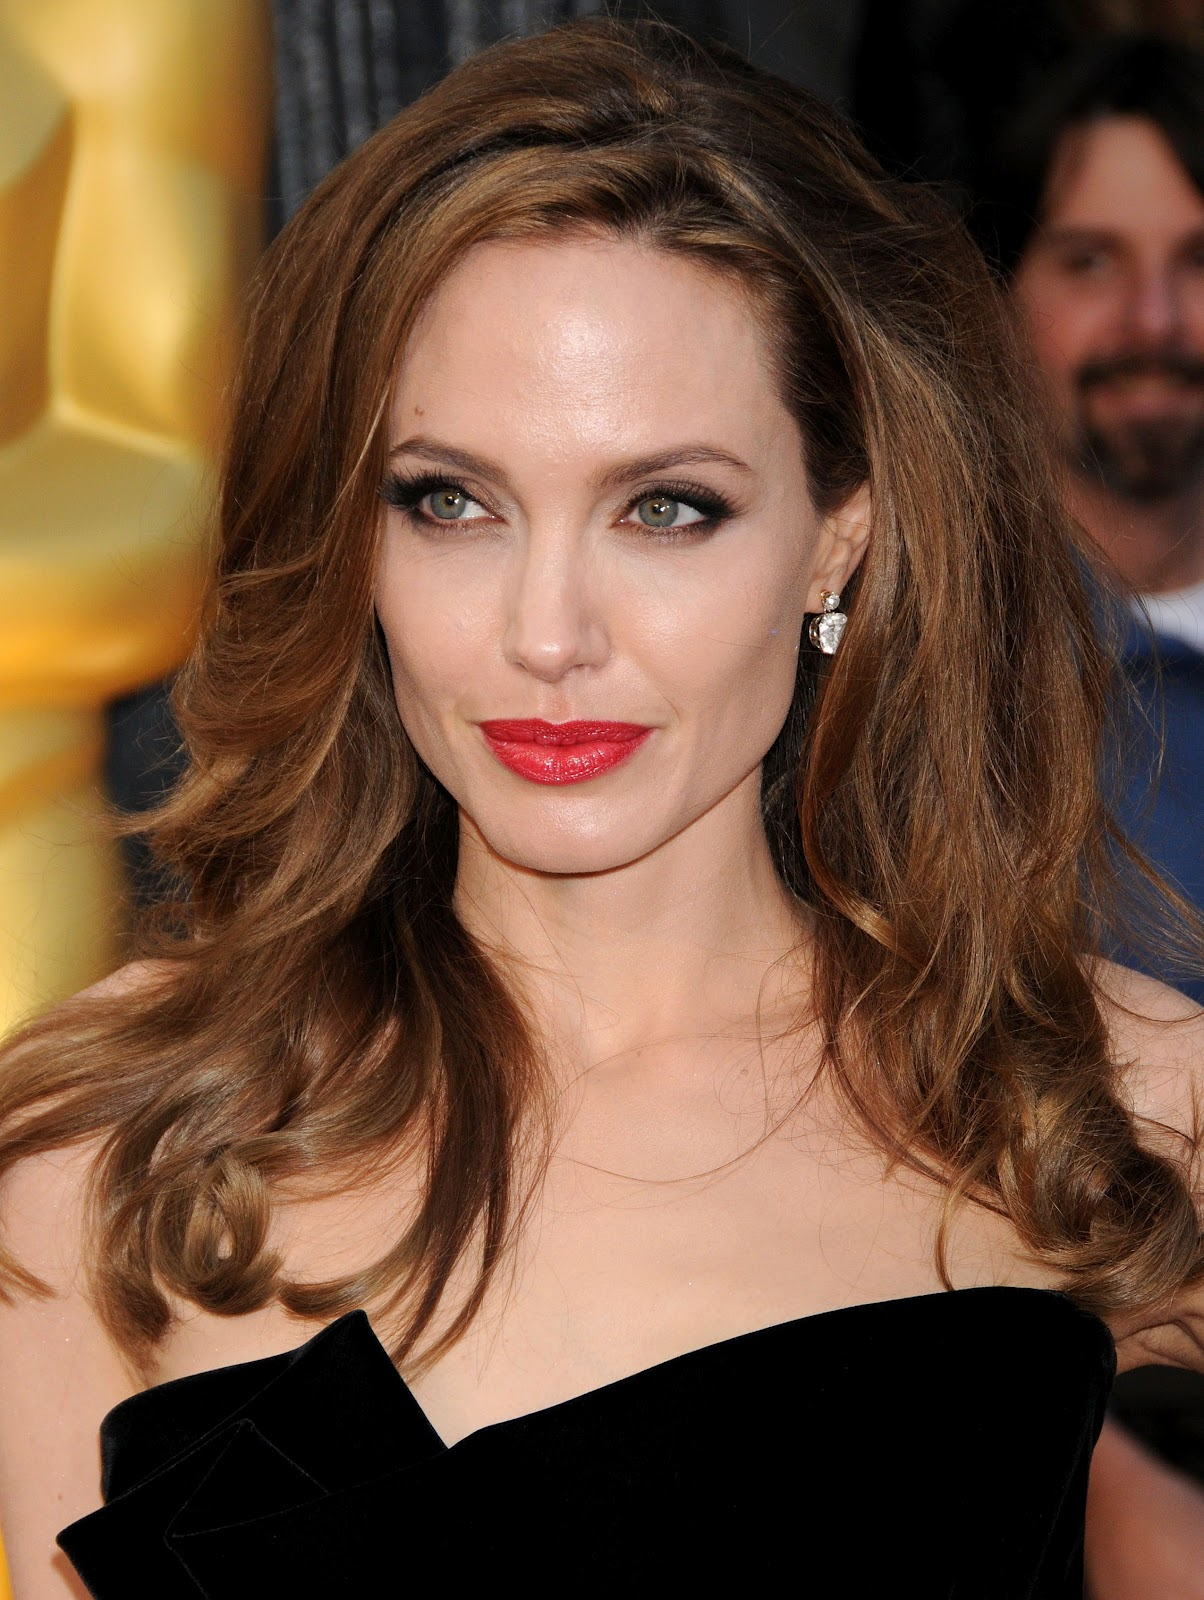 http://4.bp.blogspot.com/-sfmLrK7jUwQ/T0uuzY_6guI/AAAAAAAAC0Y/ObObHUYVKsY/s1600/CU-Angelina+Jolie+arrives+at+the+84th+Annual+Academy+Awards-03.jpg